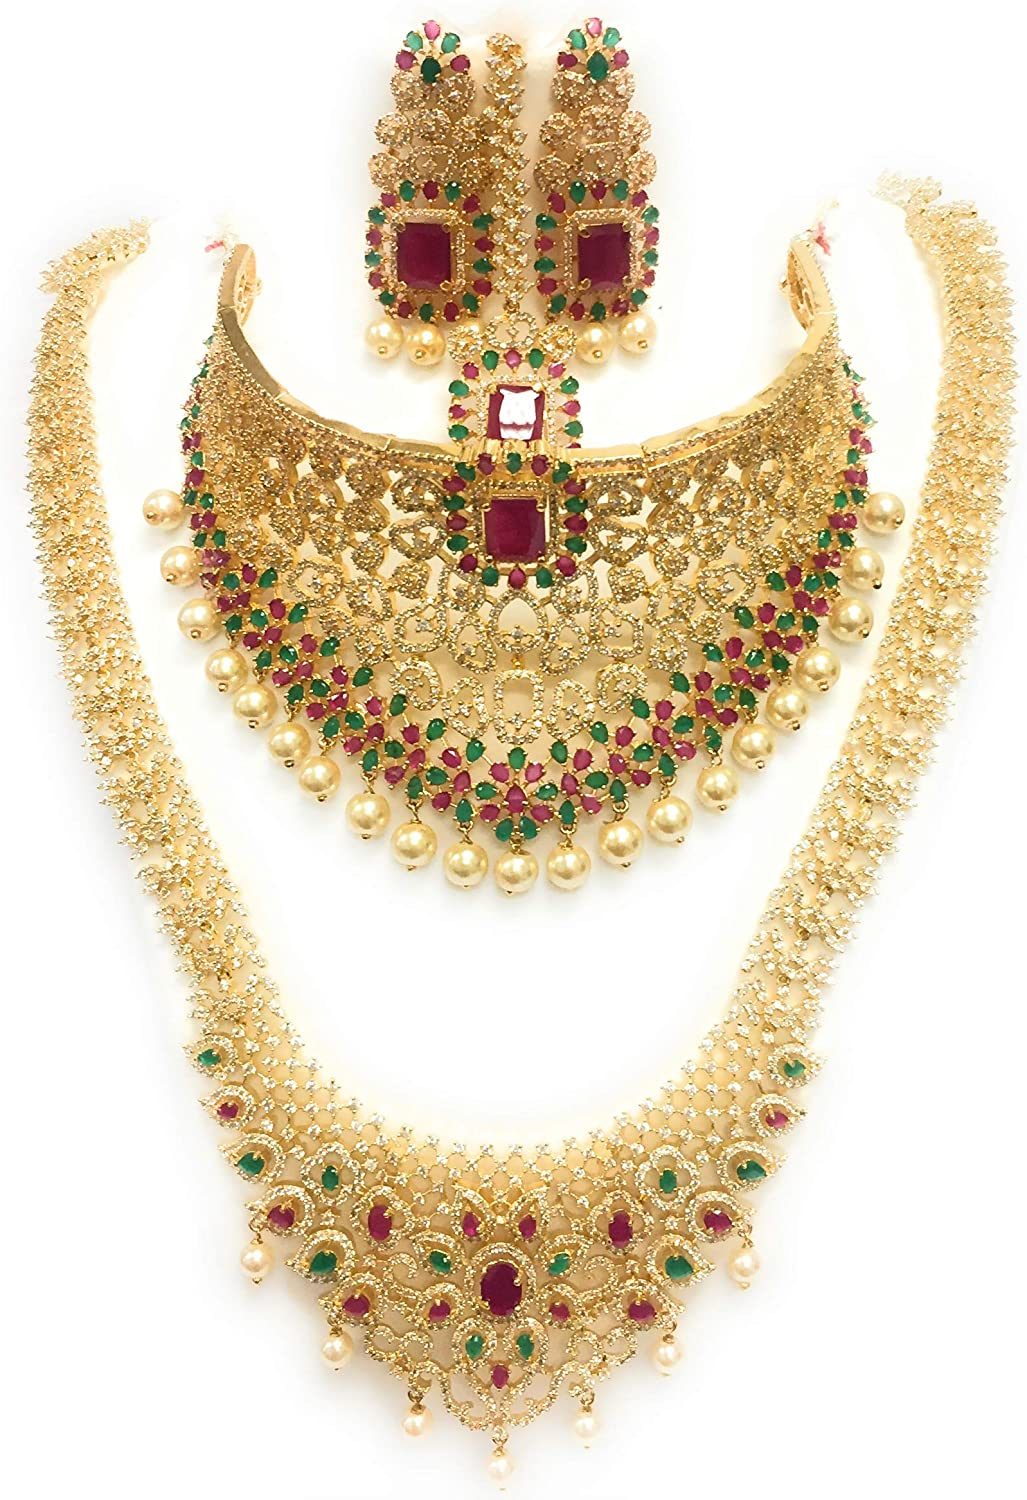 Bollywood Ethnic Gold Plated Rubies Green Stones Indian Fashion Bridal Jewelry Necklace Earring Set for Women